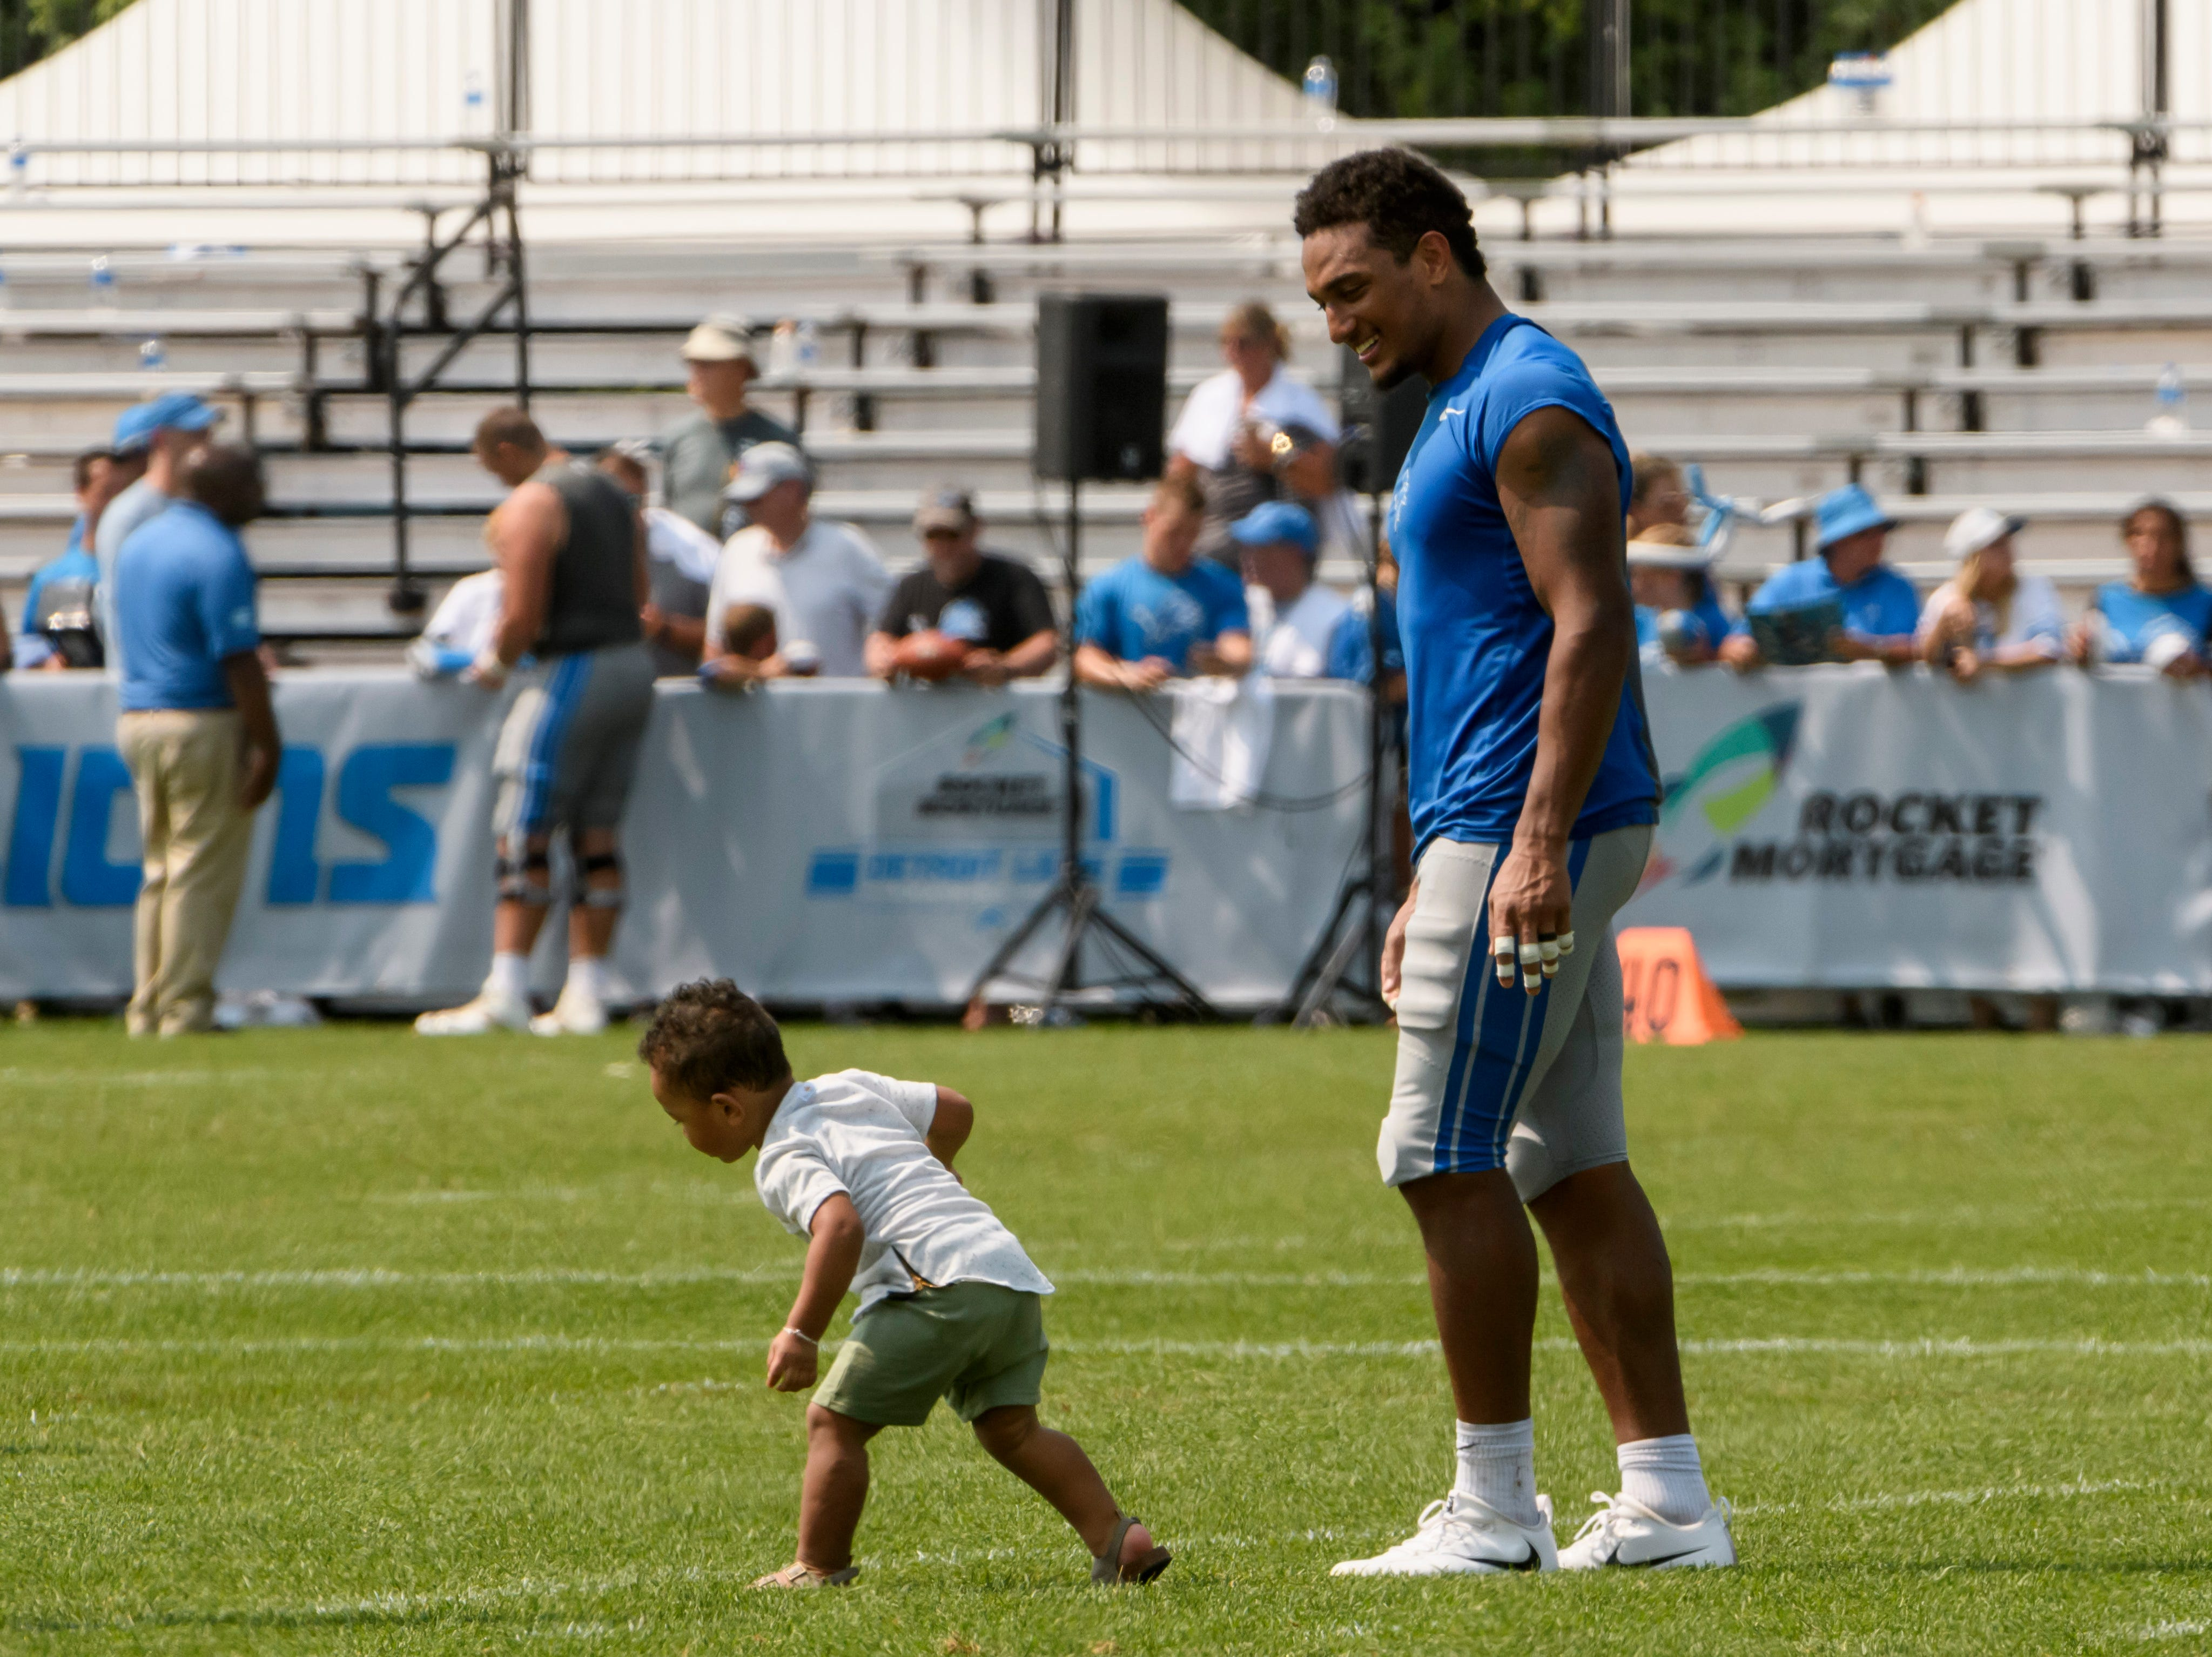 Some of the players and their children ran around on the field after practice.